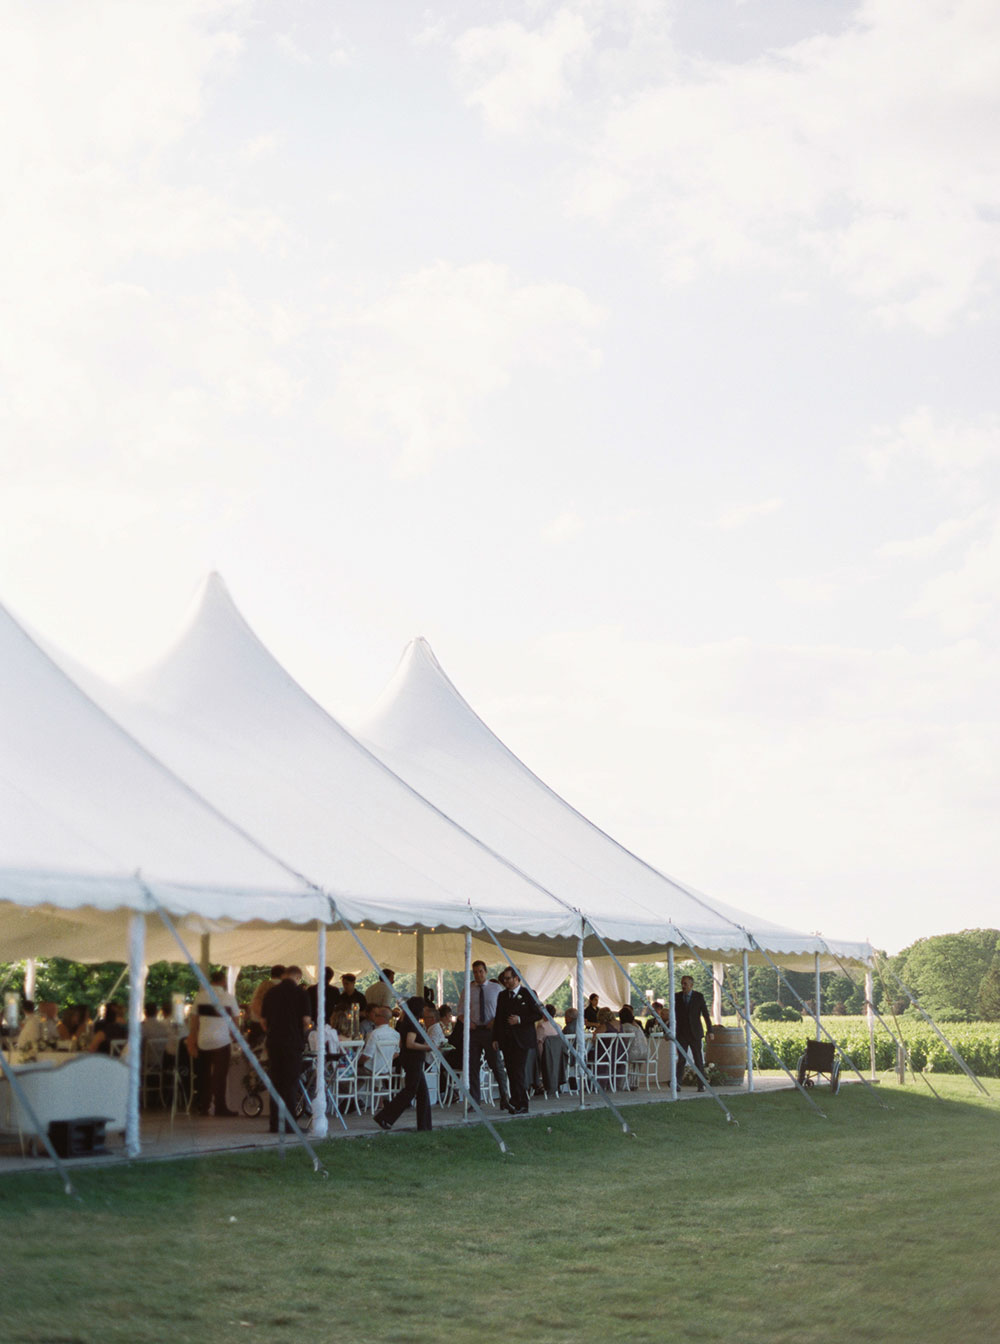 kurtz-orchards-wedding-gracewood-estate-niagara-on-the-lake-photo-by-katie-nicolle-photography-0088.JPG